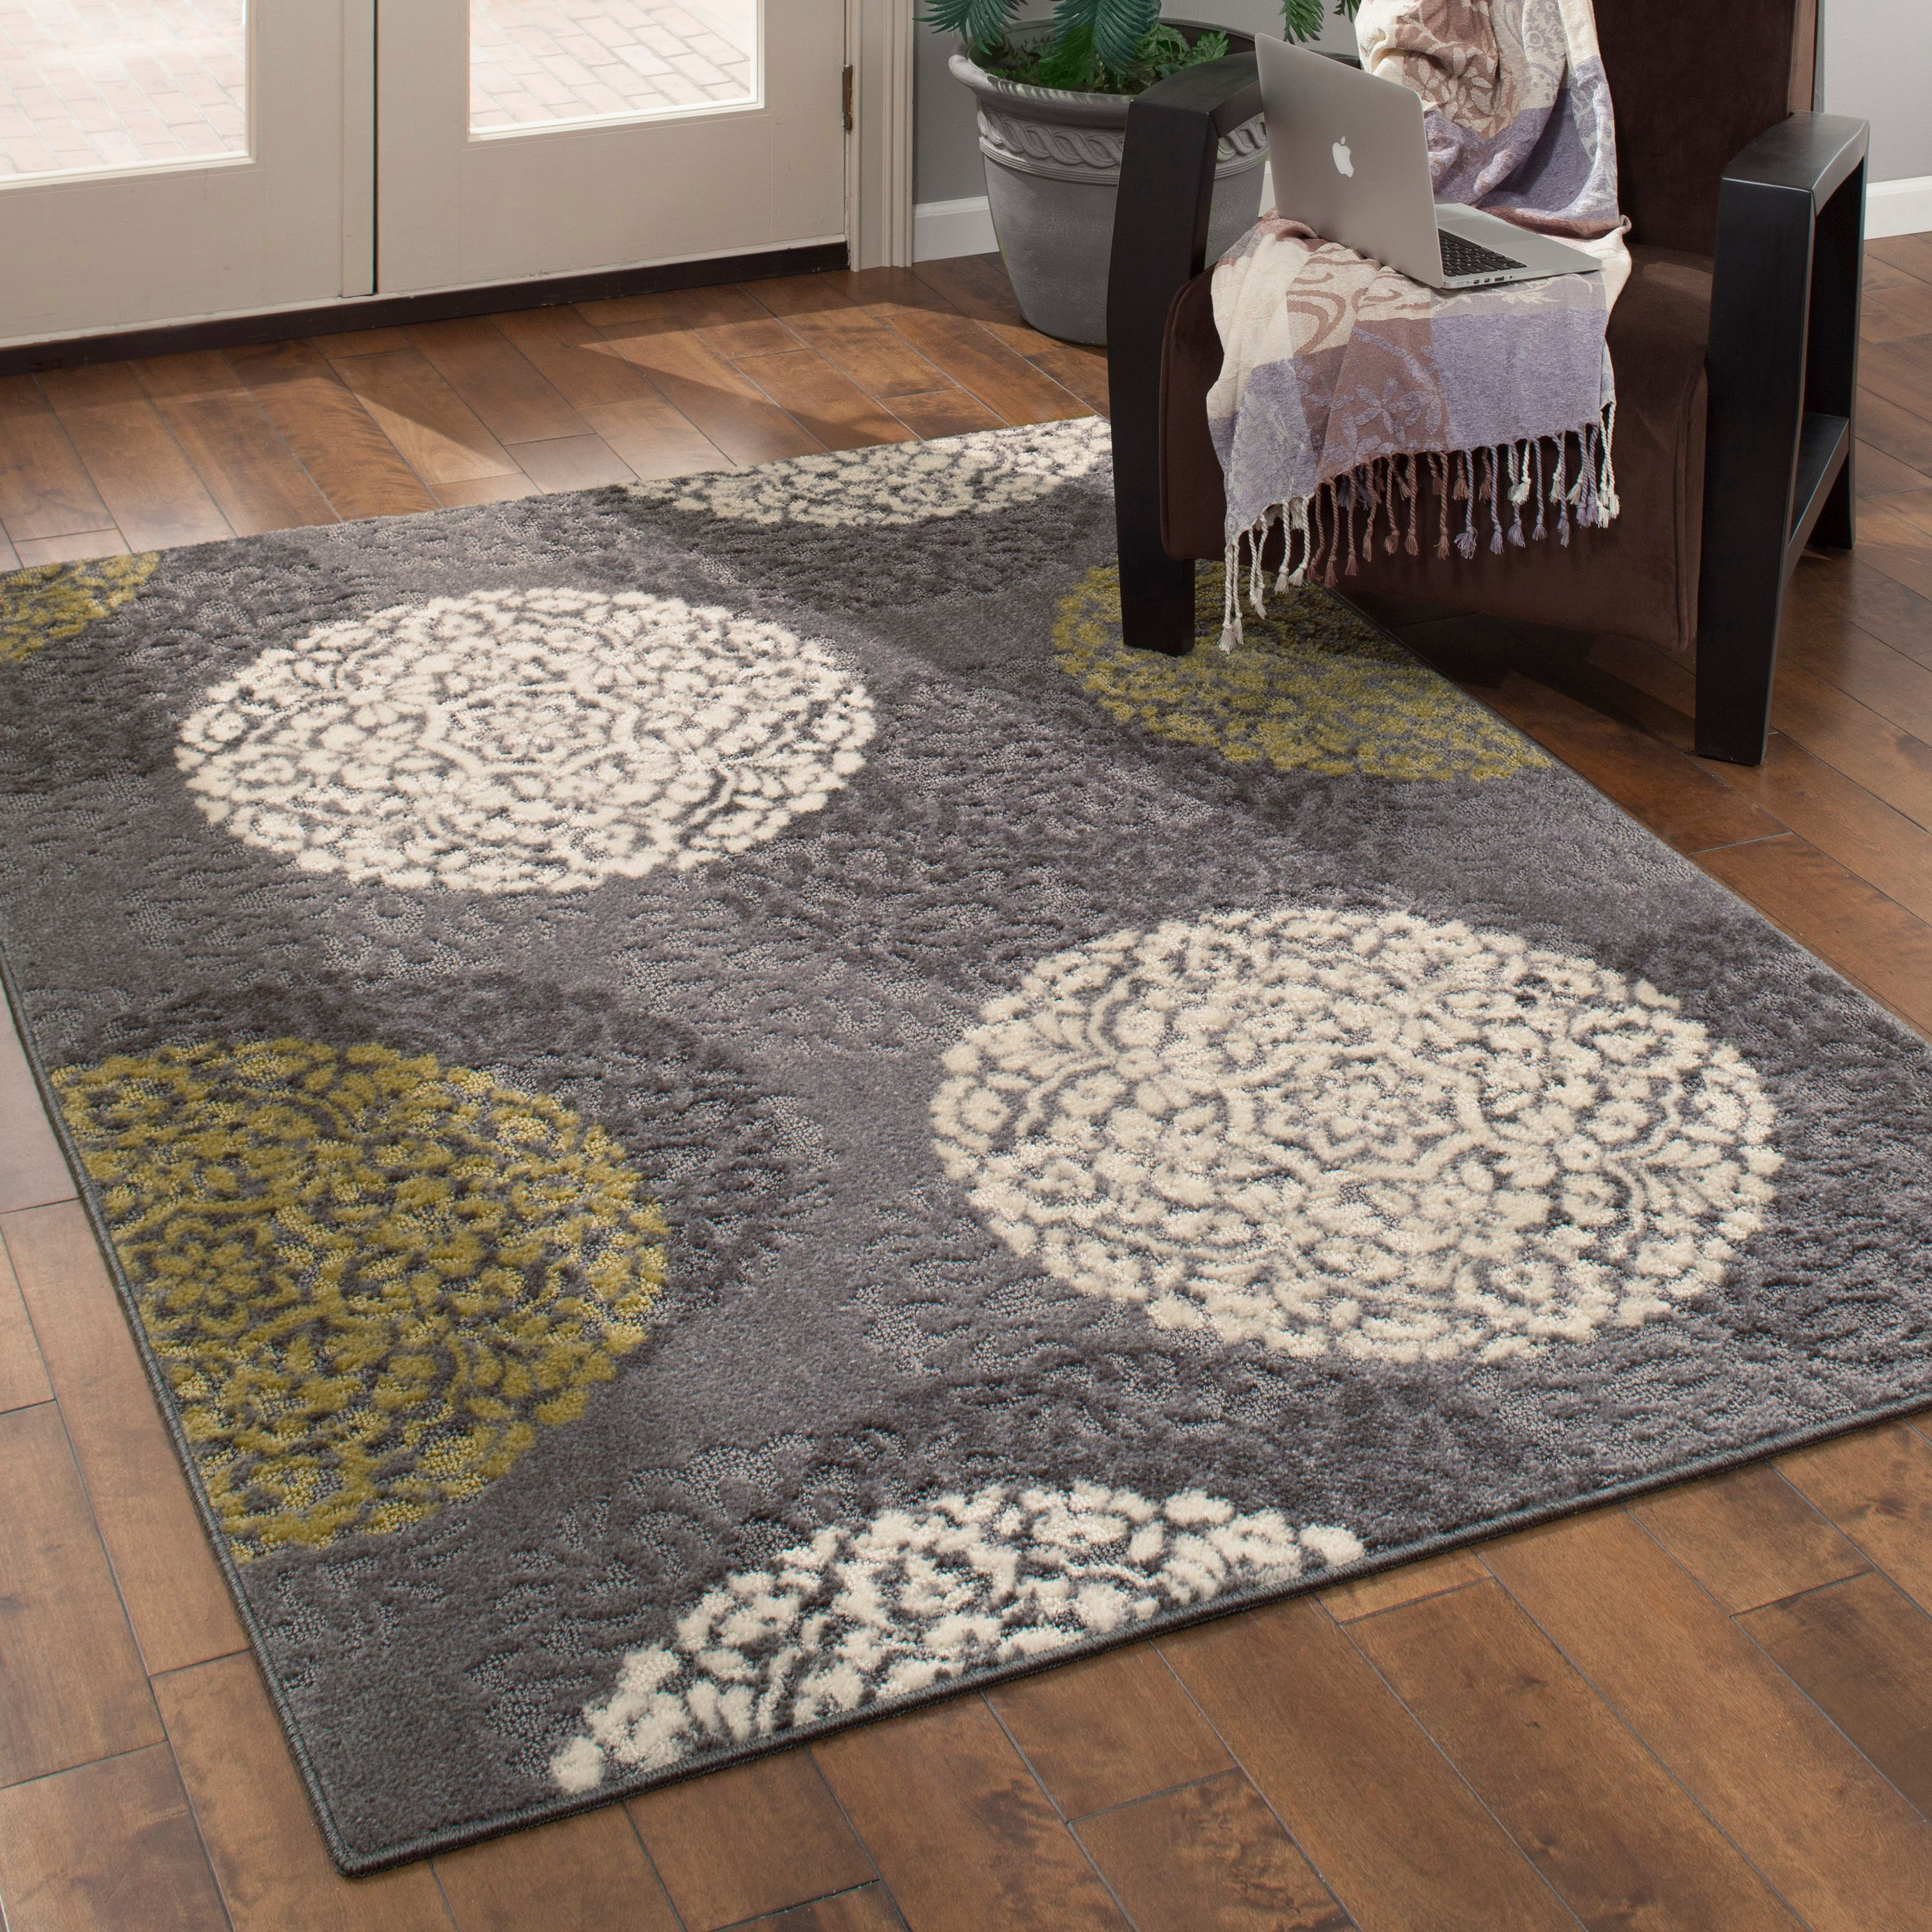 Better Homes and Gardens Overlapping Medallion Area Rugs or Runner